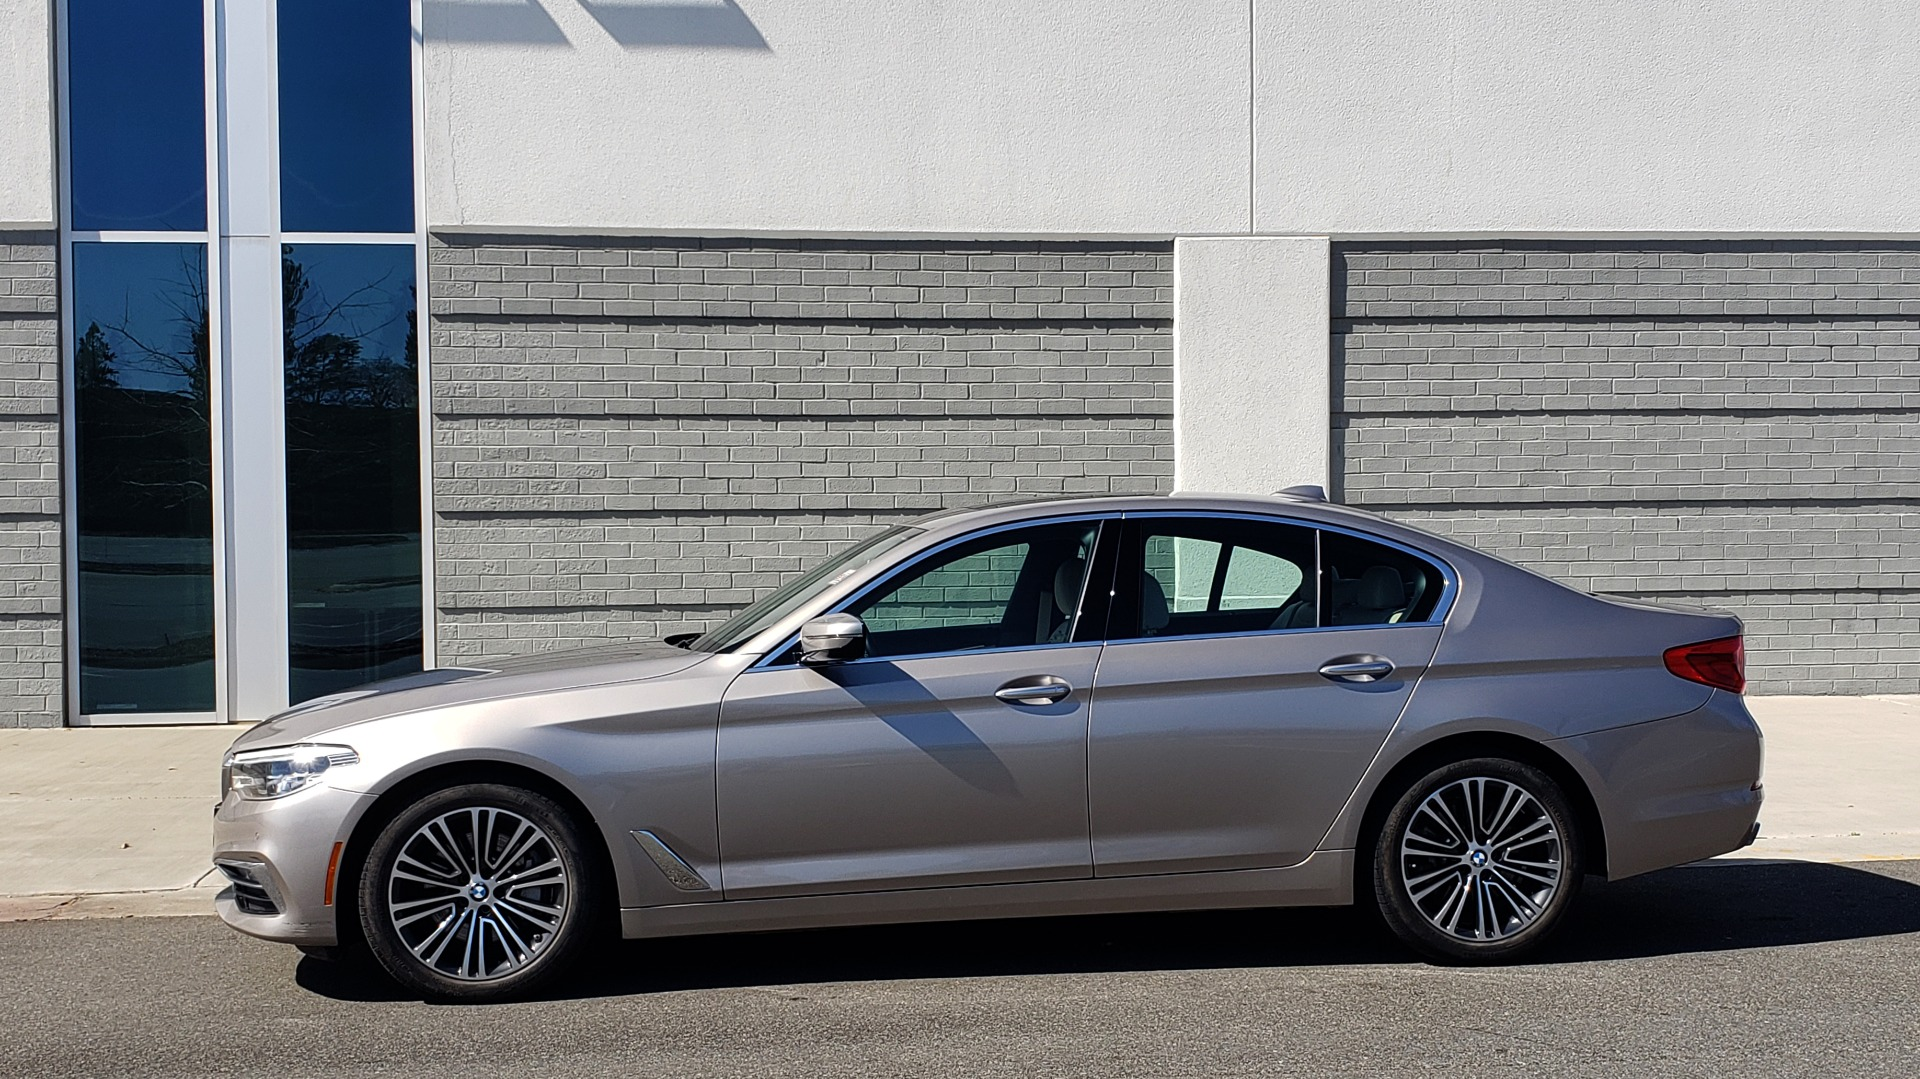 Used 2018 BMW 5 SERIES 540IXDRIVE PREMIUM / DRVR ASST PLUS / LUX PKG / APPLE CARPLAY for sale Sold at Formula Imports in Charlotte NC 28227 2